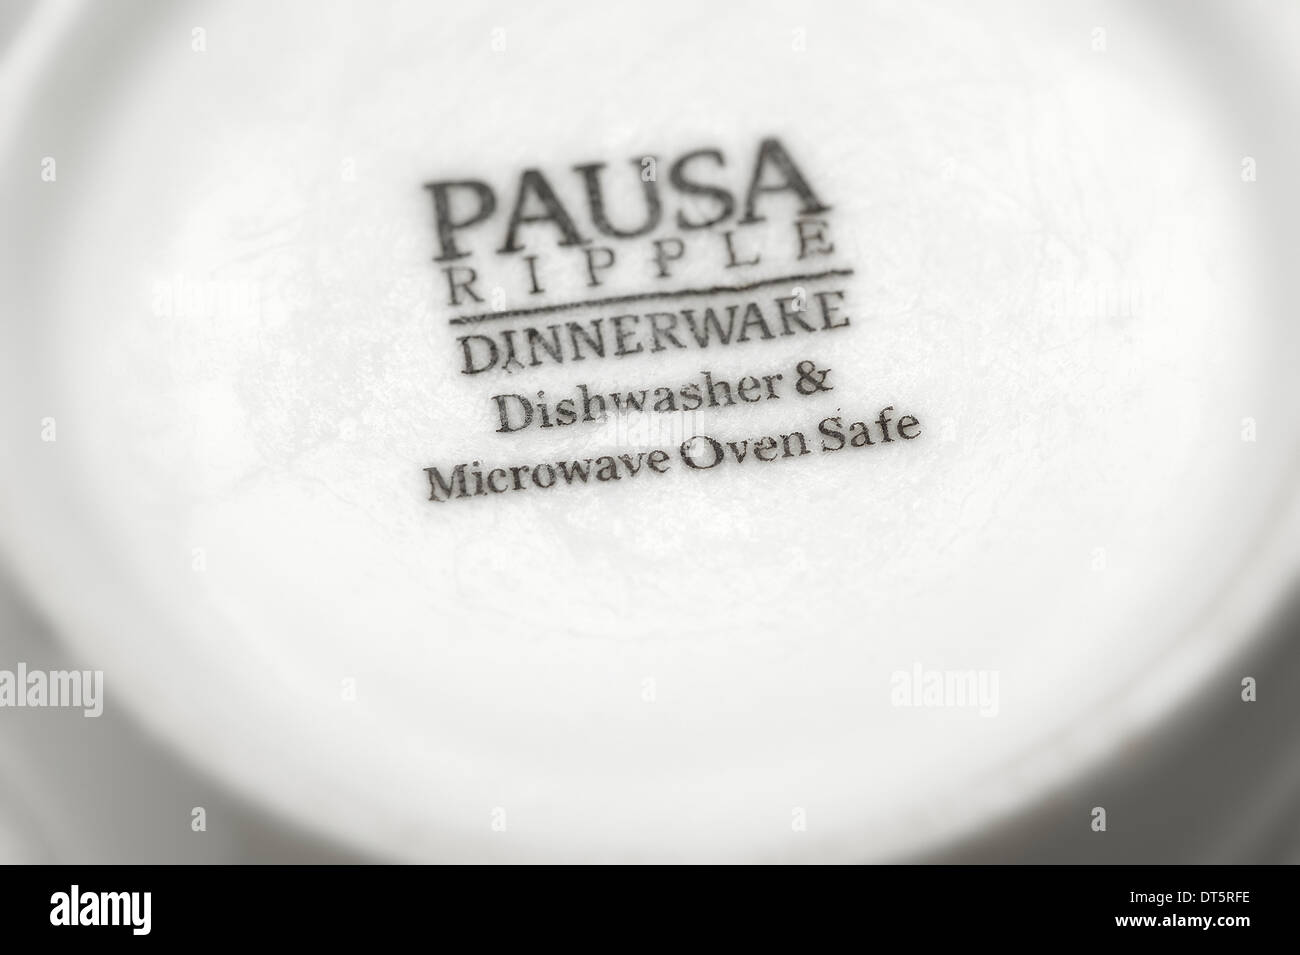 Pausa Ripple Dinnerware dishwasher and microwave oven safe  sc 1 st  Alamy : dinnerware oven safe - pezcame.com